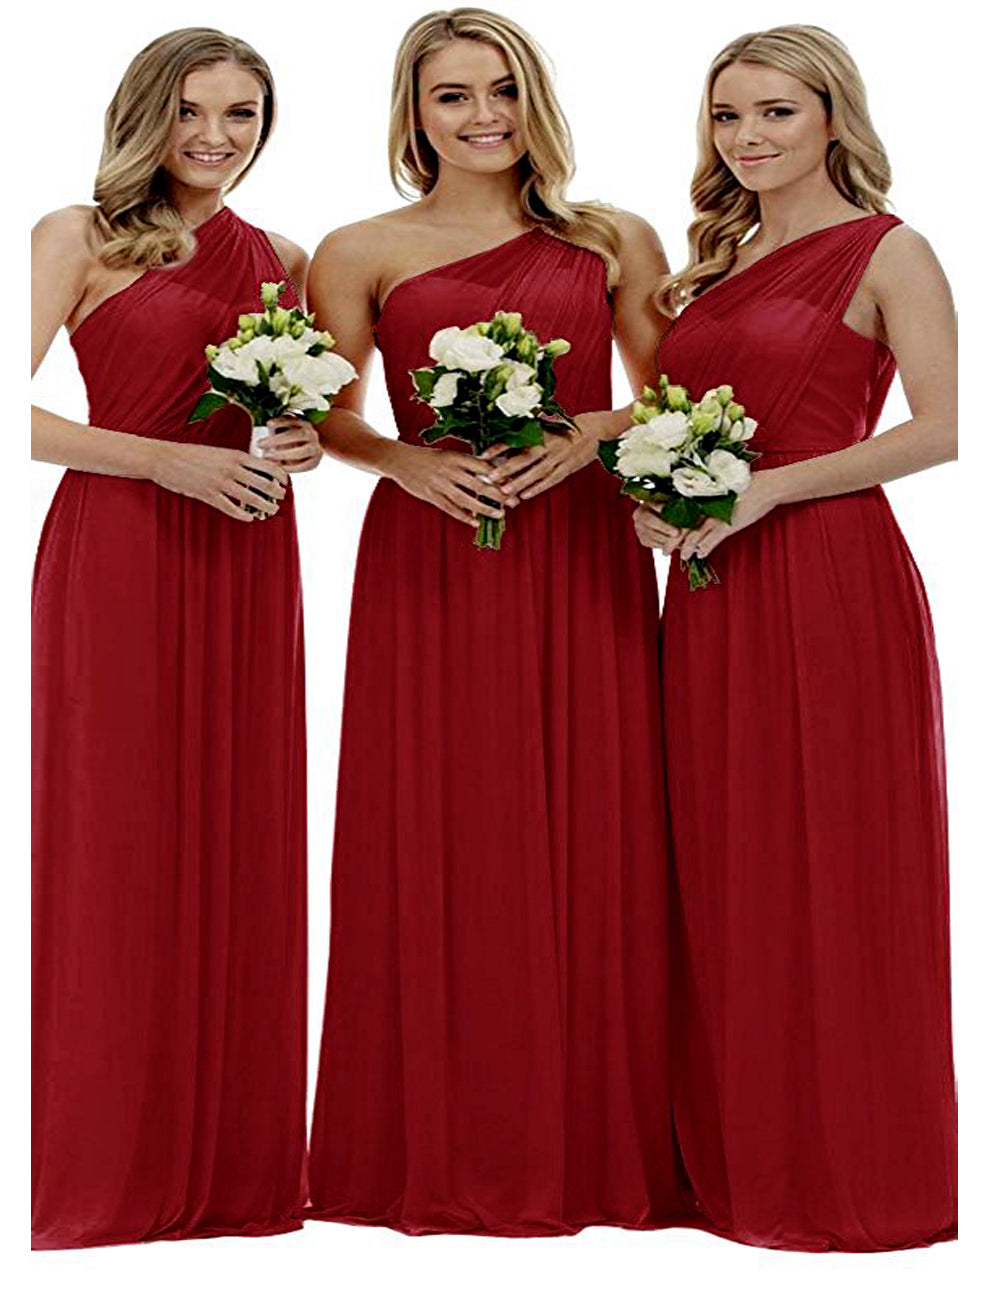 Zoe berry cranberry burgundy wine claret maroon grecian one shouldered long bridesmaid wedding bridal evening prom dress uk Loulous Bridal Boutique